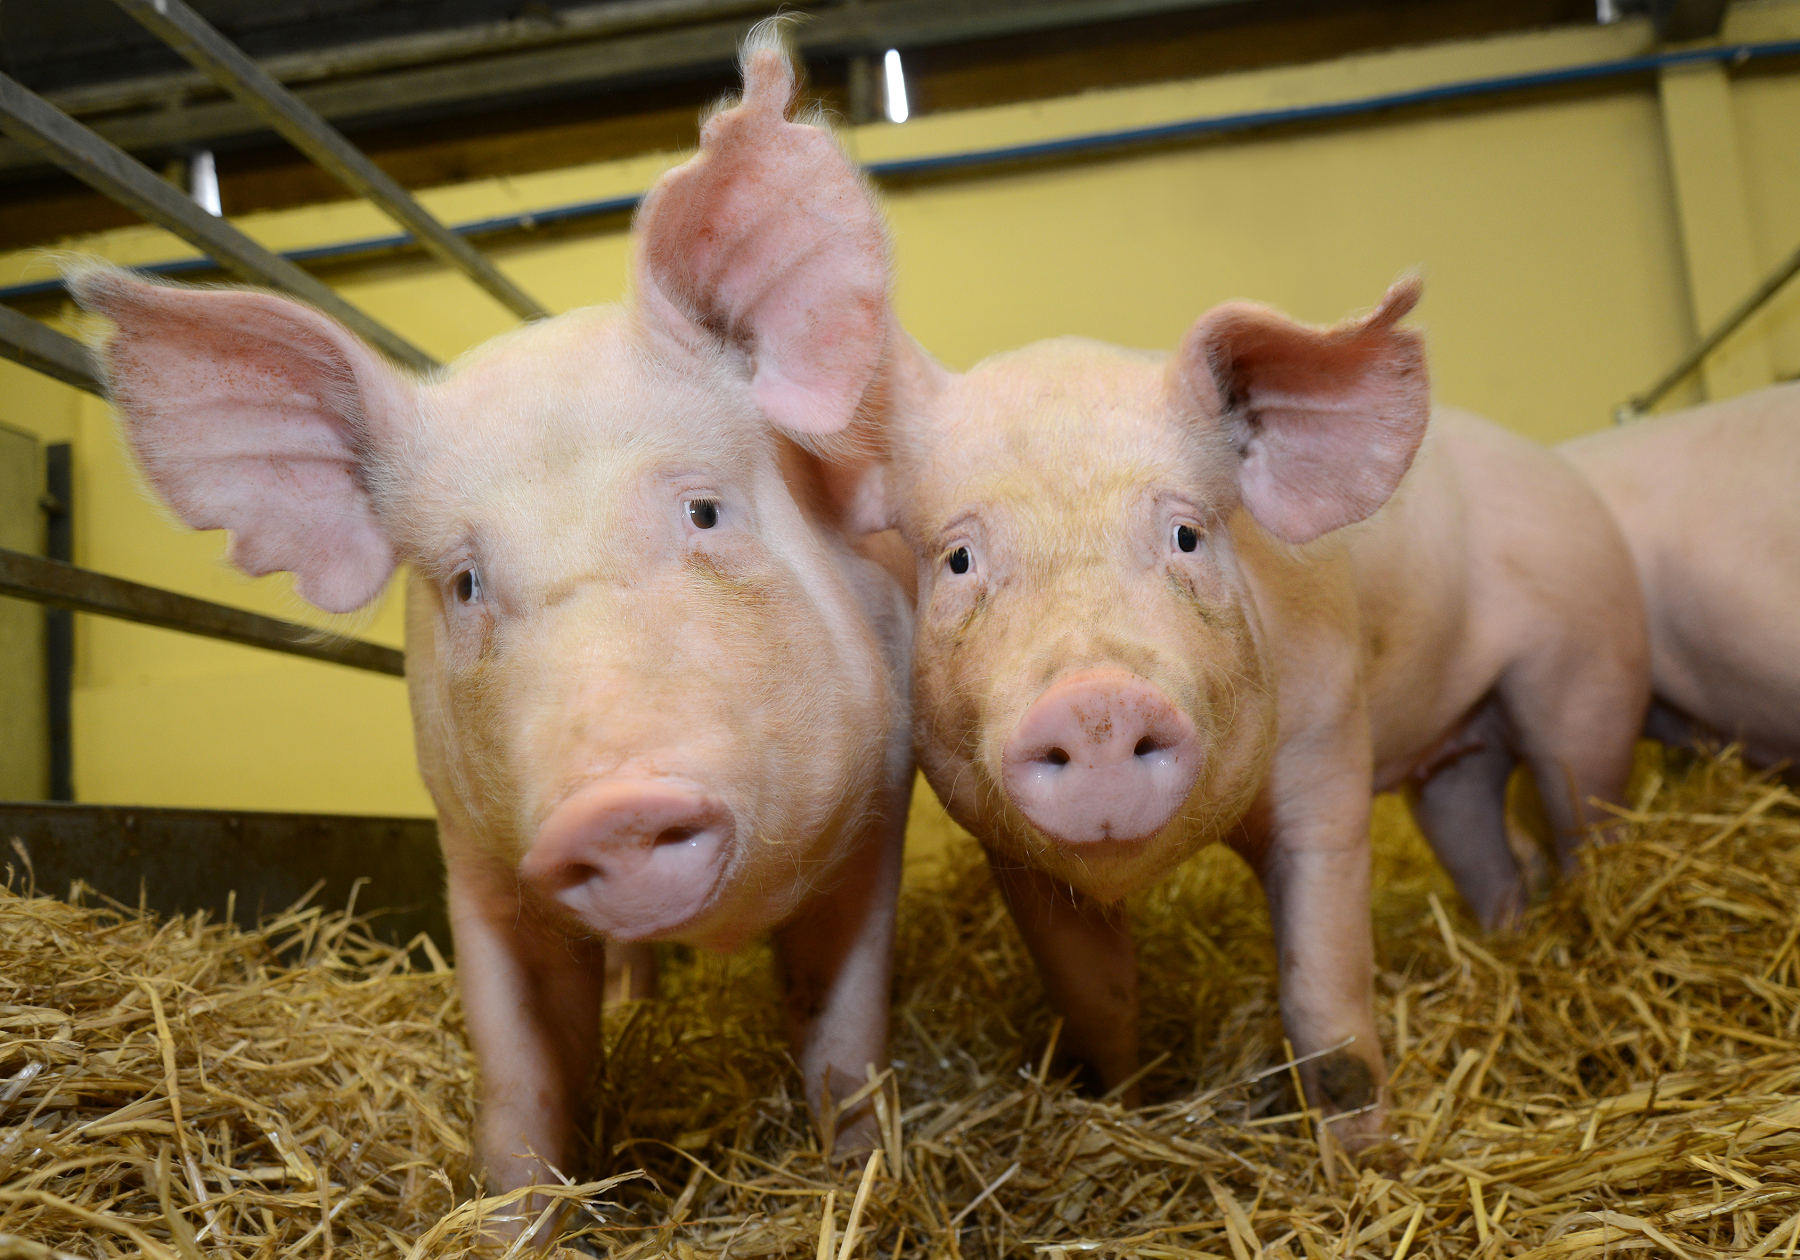 The Superpowers of Genetically Modified Pigs | The Scientist Magazine®